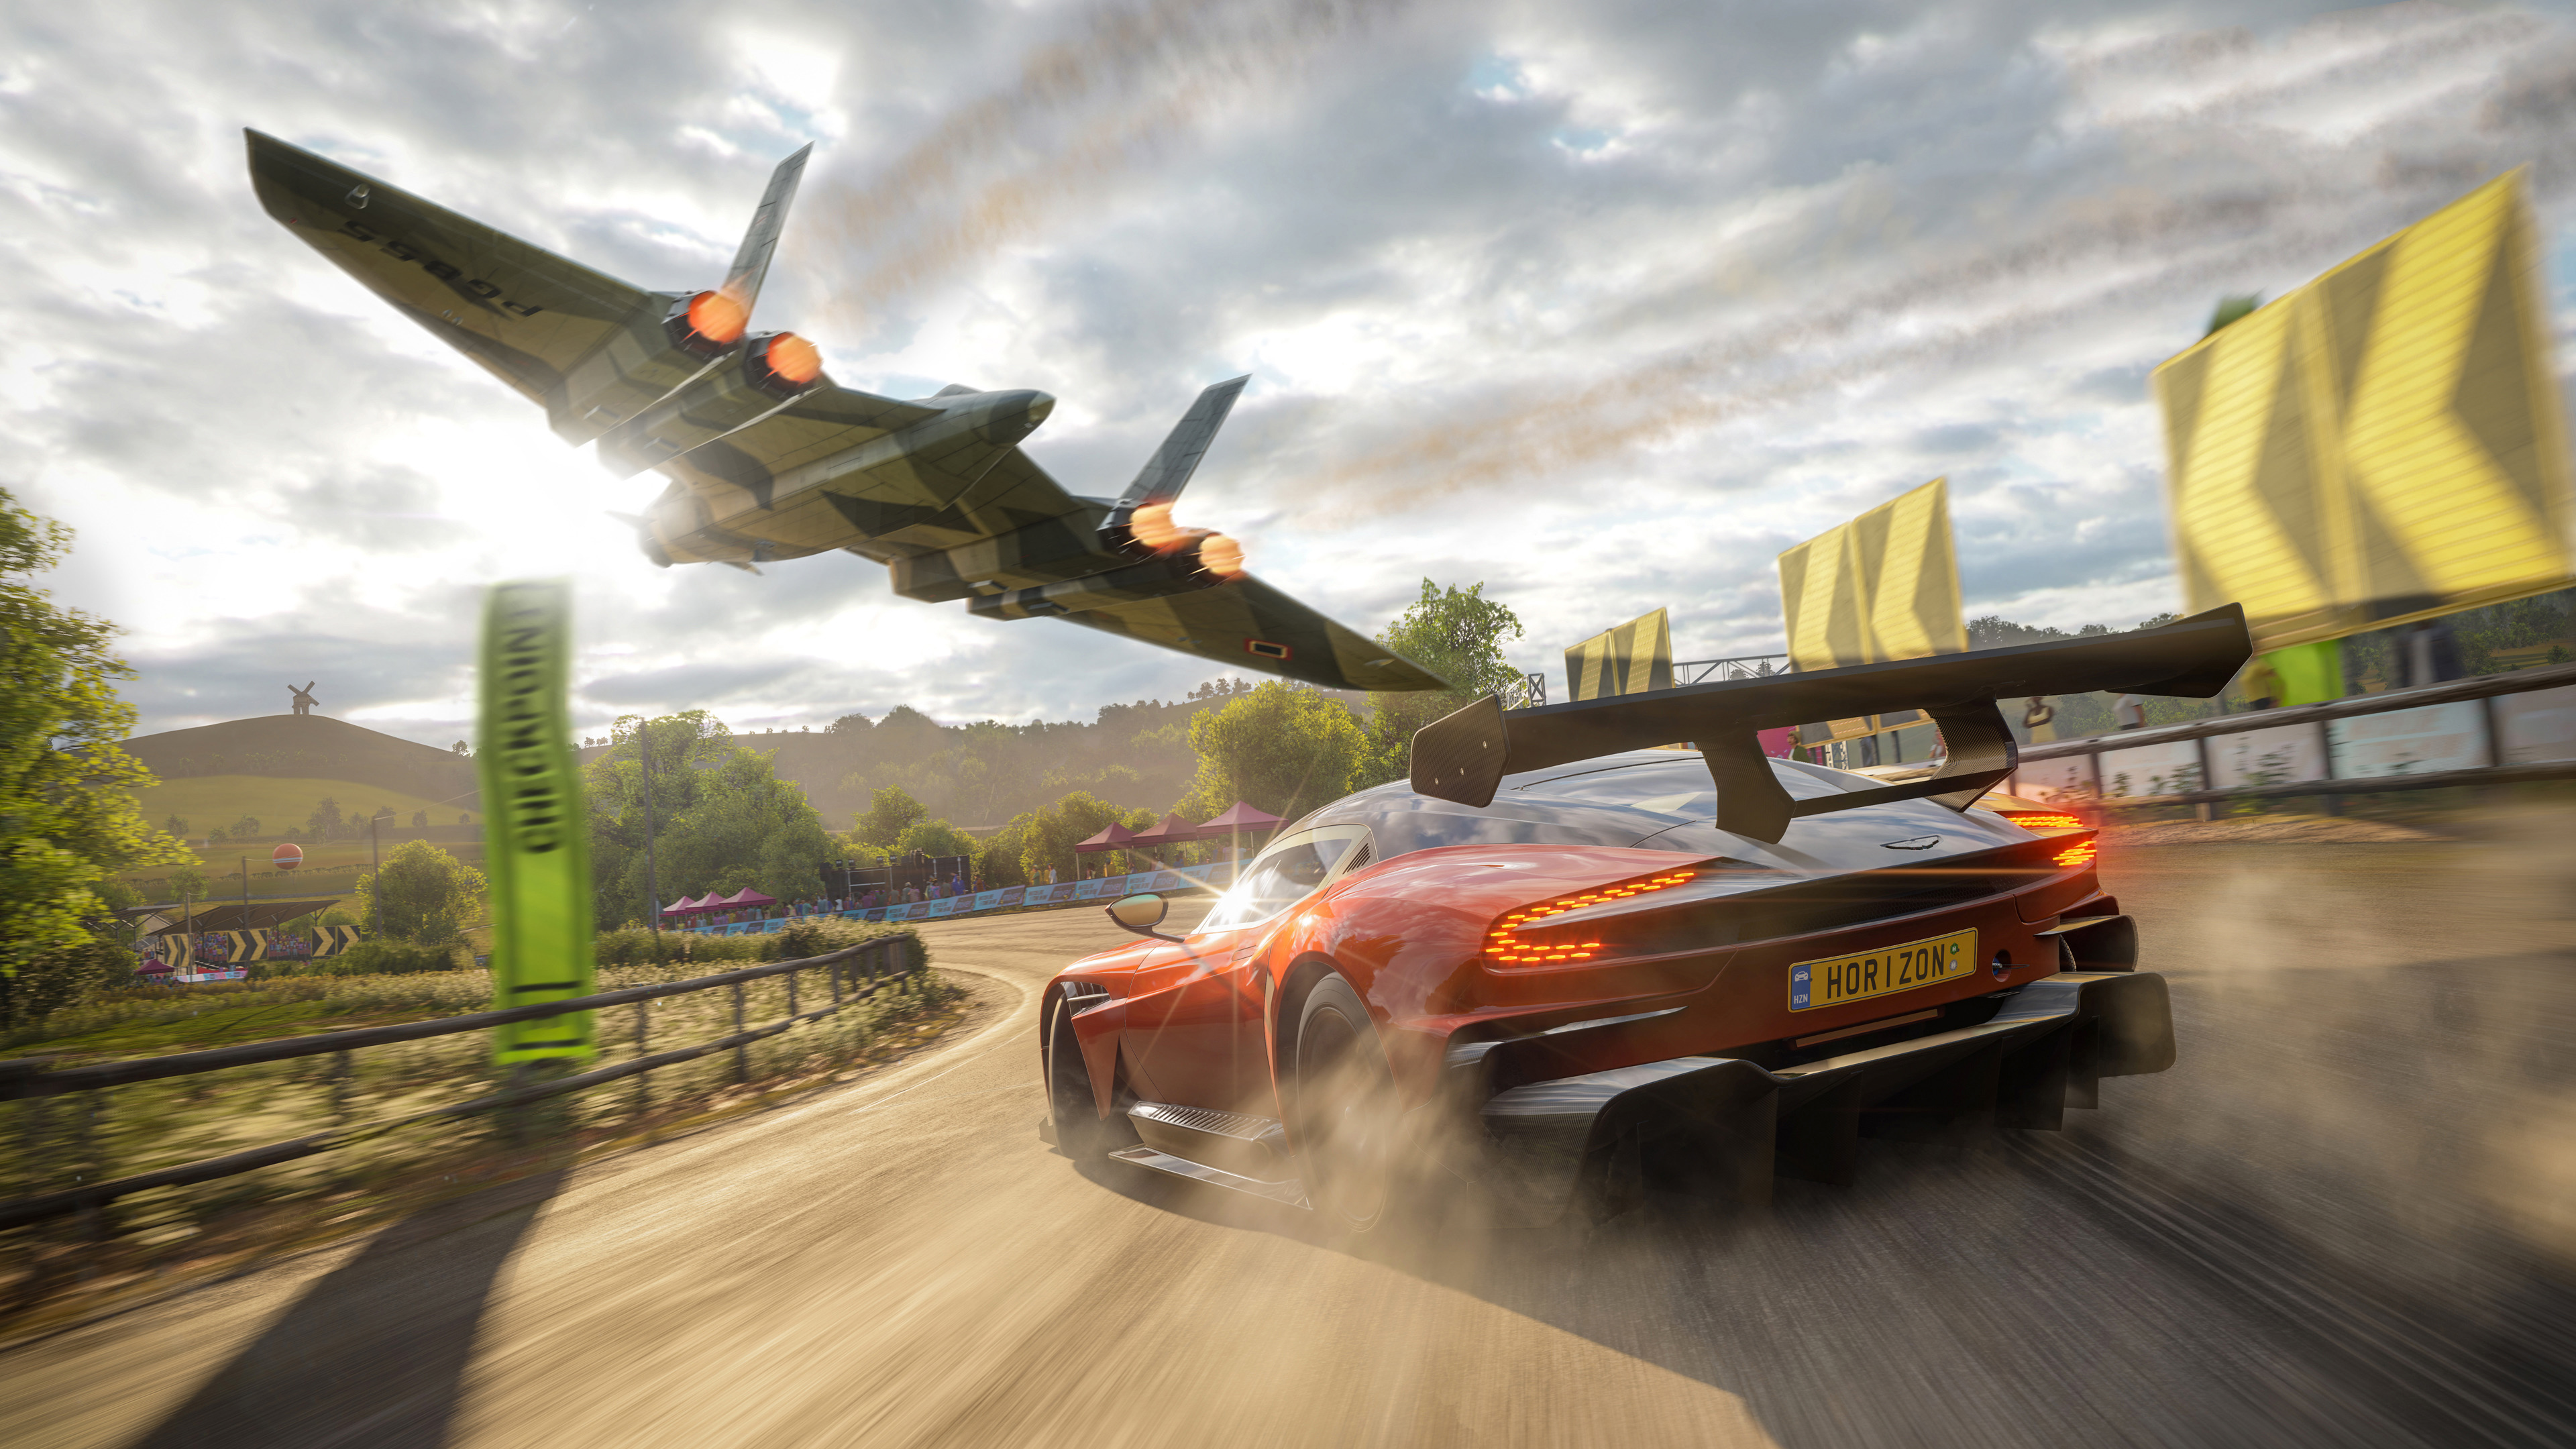 Forza horizon 4 game chase hd games 4k wallpapers images backgrounds photos and pictures - Forza logo wallpaper ...